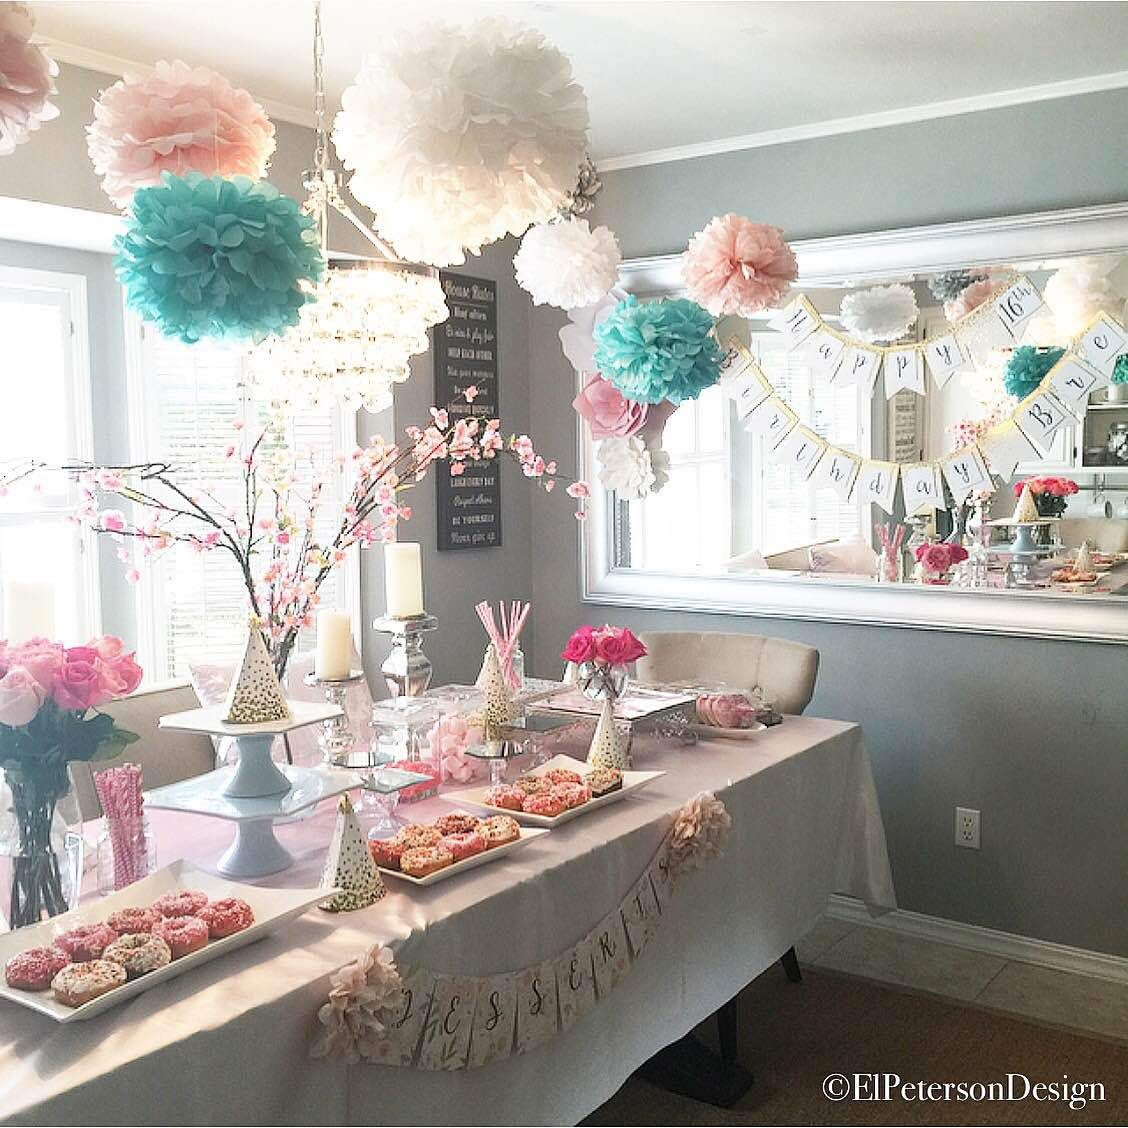 Pin On Elpetersondesign Party And Holiday Ideas